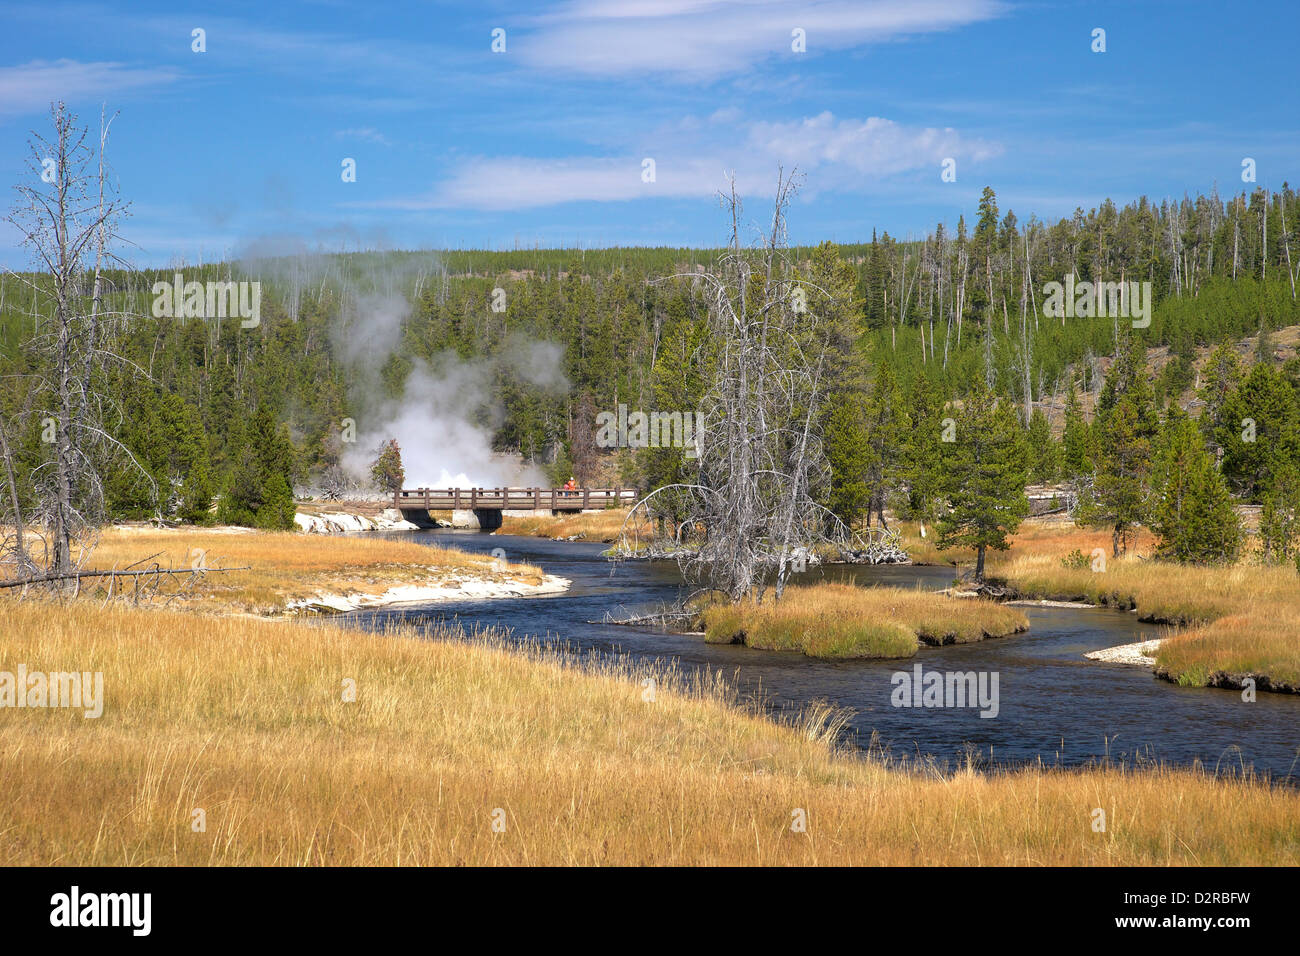 Oblong Geyser, Upper Geyser Basin, Yellowstone National Park, Wyoming, USA - Stock Image